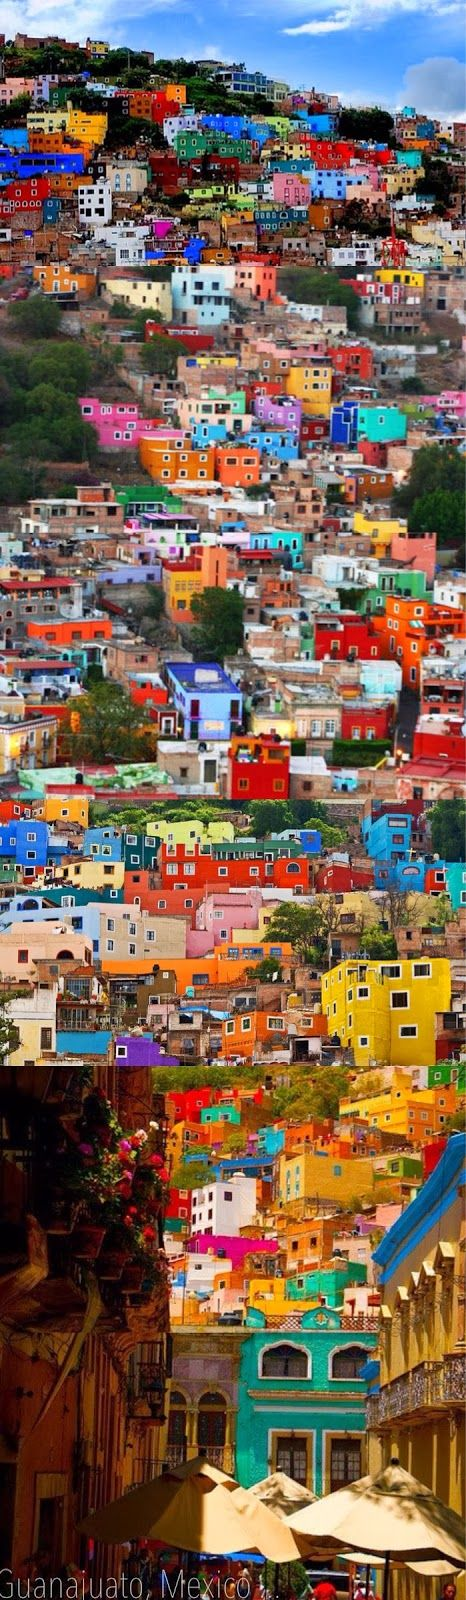 Guanajuato, Mexico Click the link below to book your Destination-Incentive-Luxury-or Romance vacation with Red Amore Travel! http://redamoretravel.com/index.php